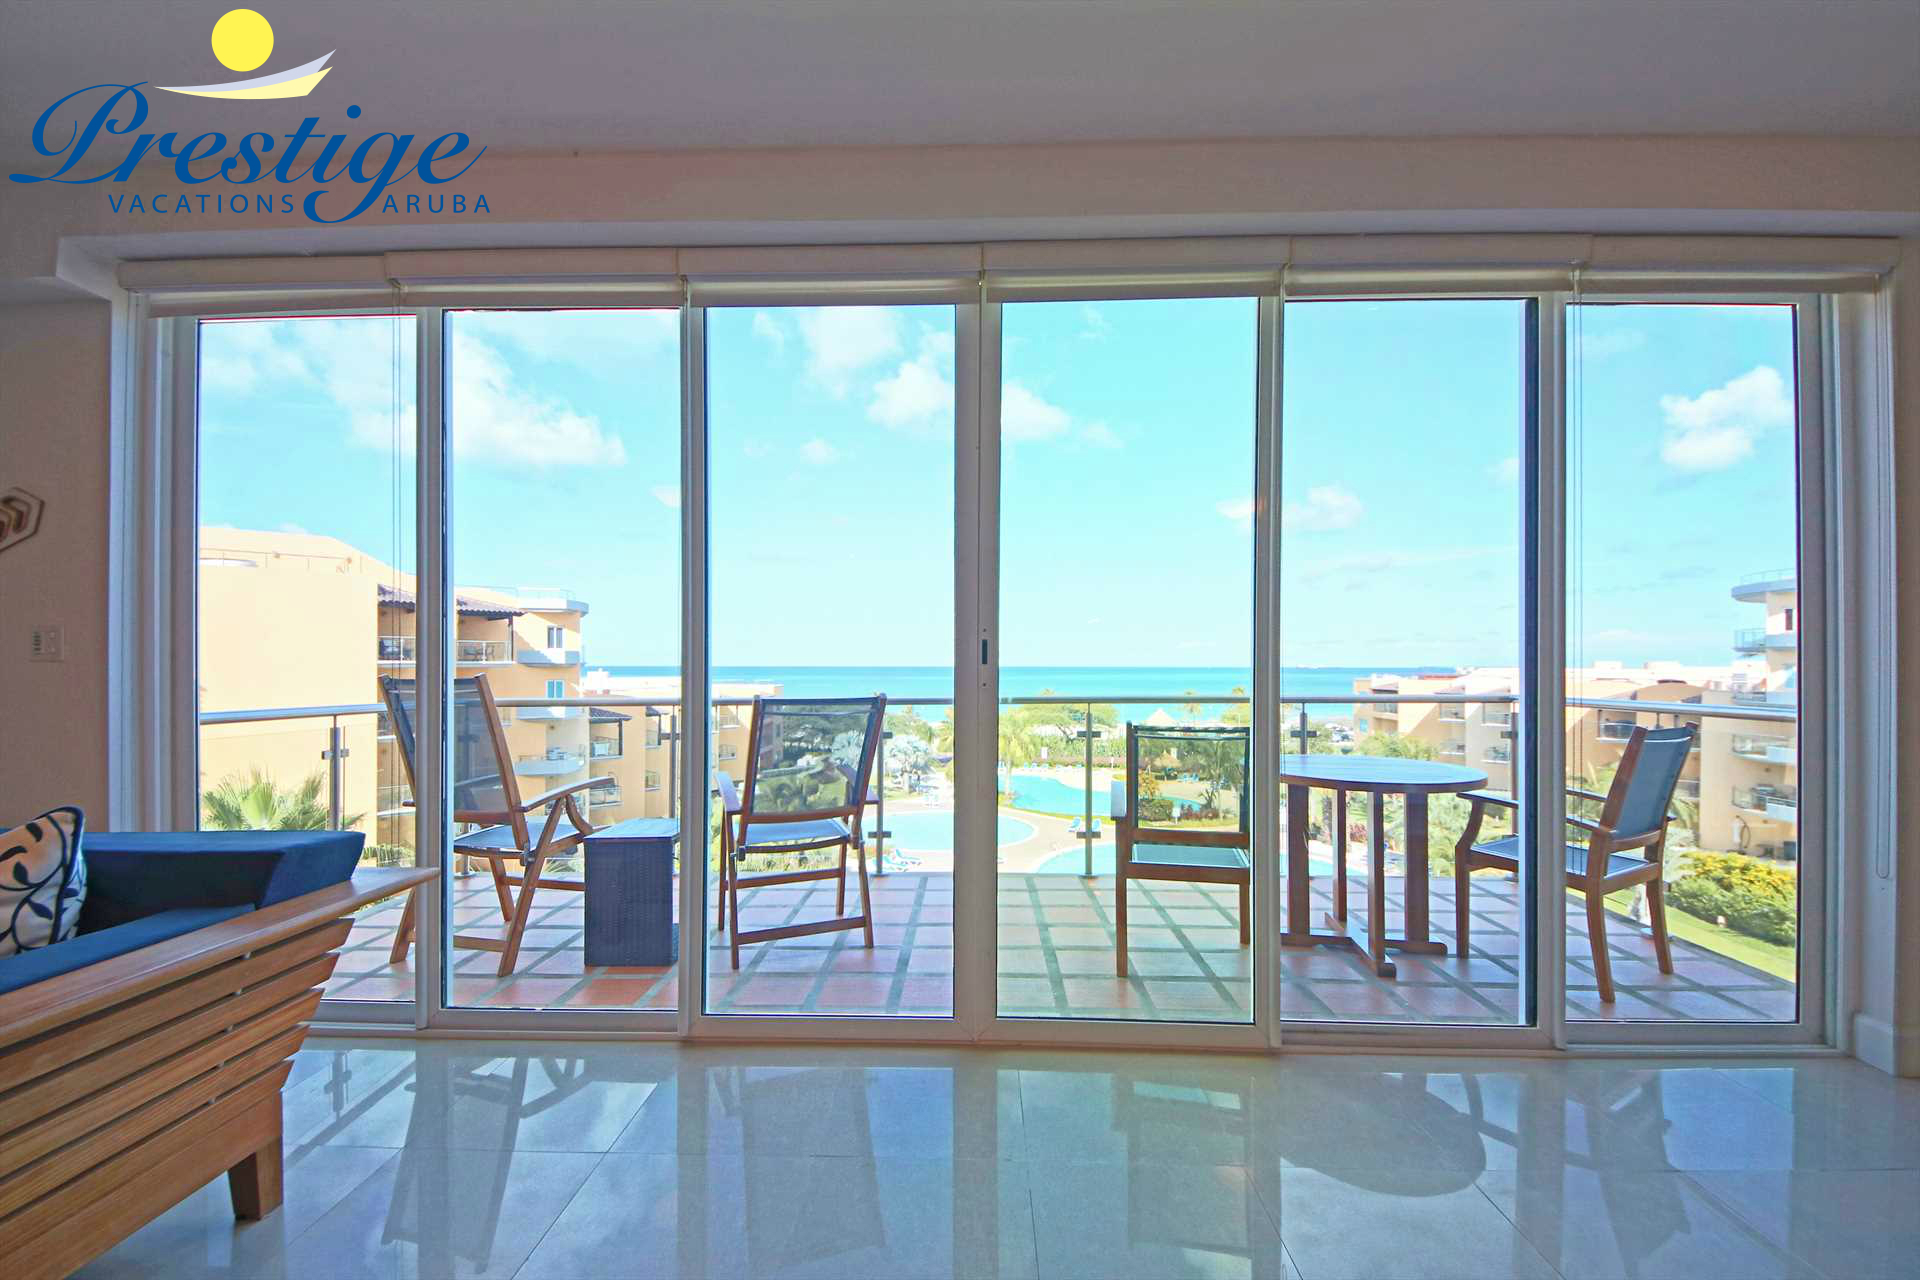 The stunning ocean views continue in the living area and the balcony